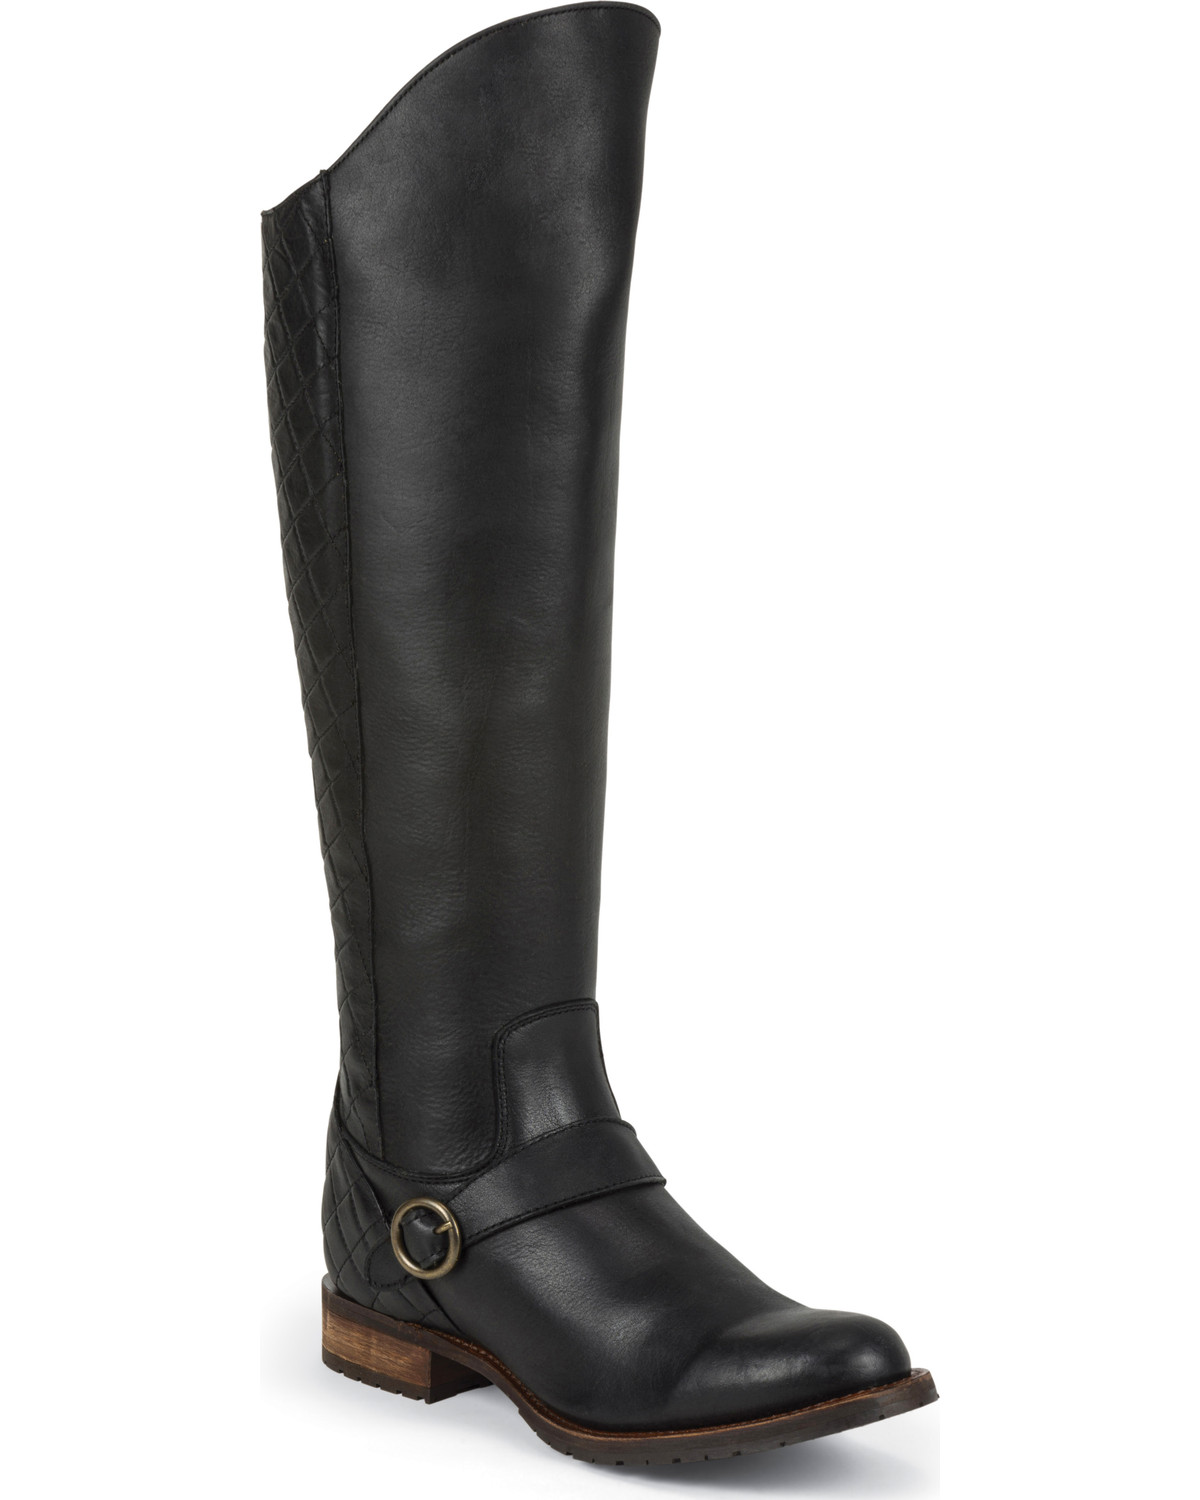 riding boots images mvqoqtf